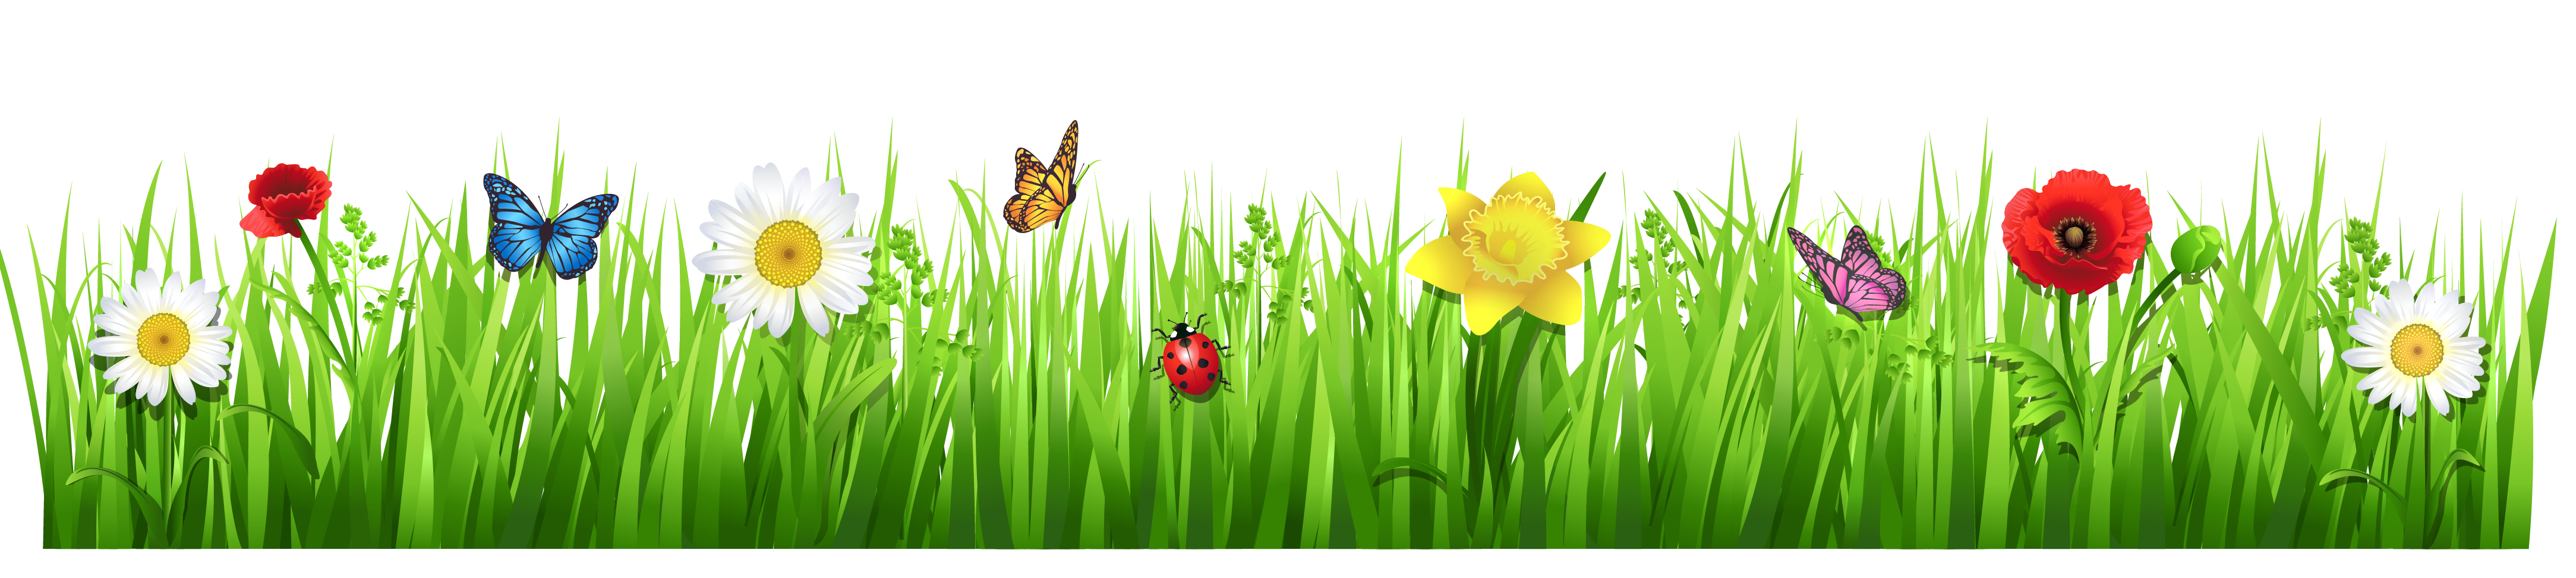 Flower meadow clipart png freeuse download Tulip Meadow Grasses Wildflower Wallpaper - Spring Grass with ... png freeuse download